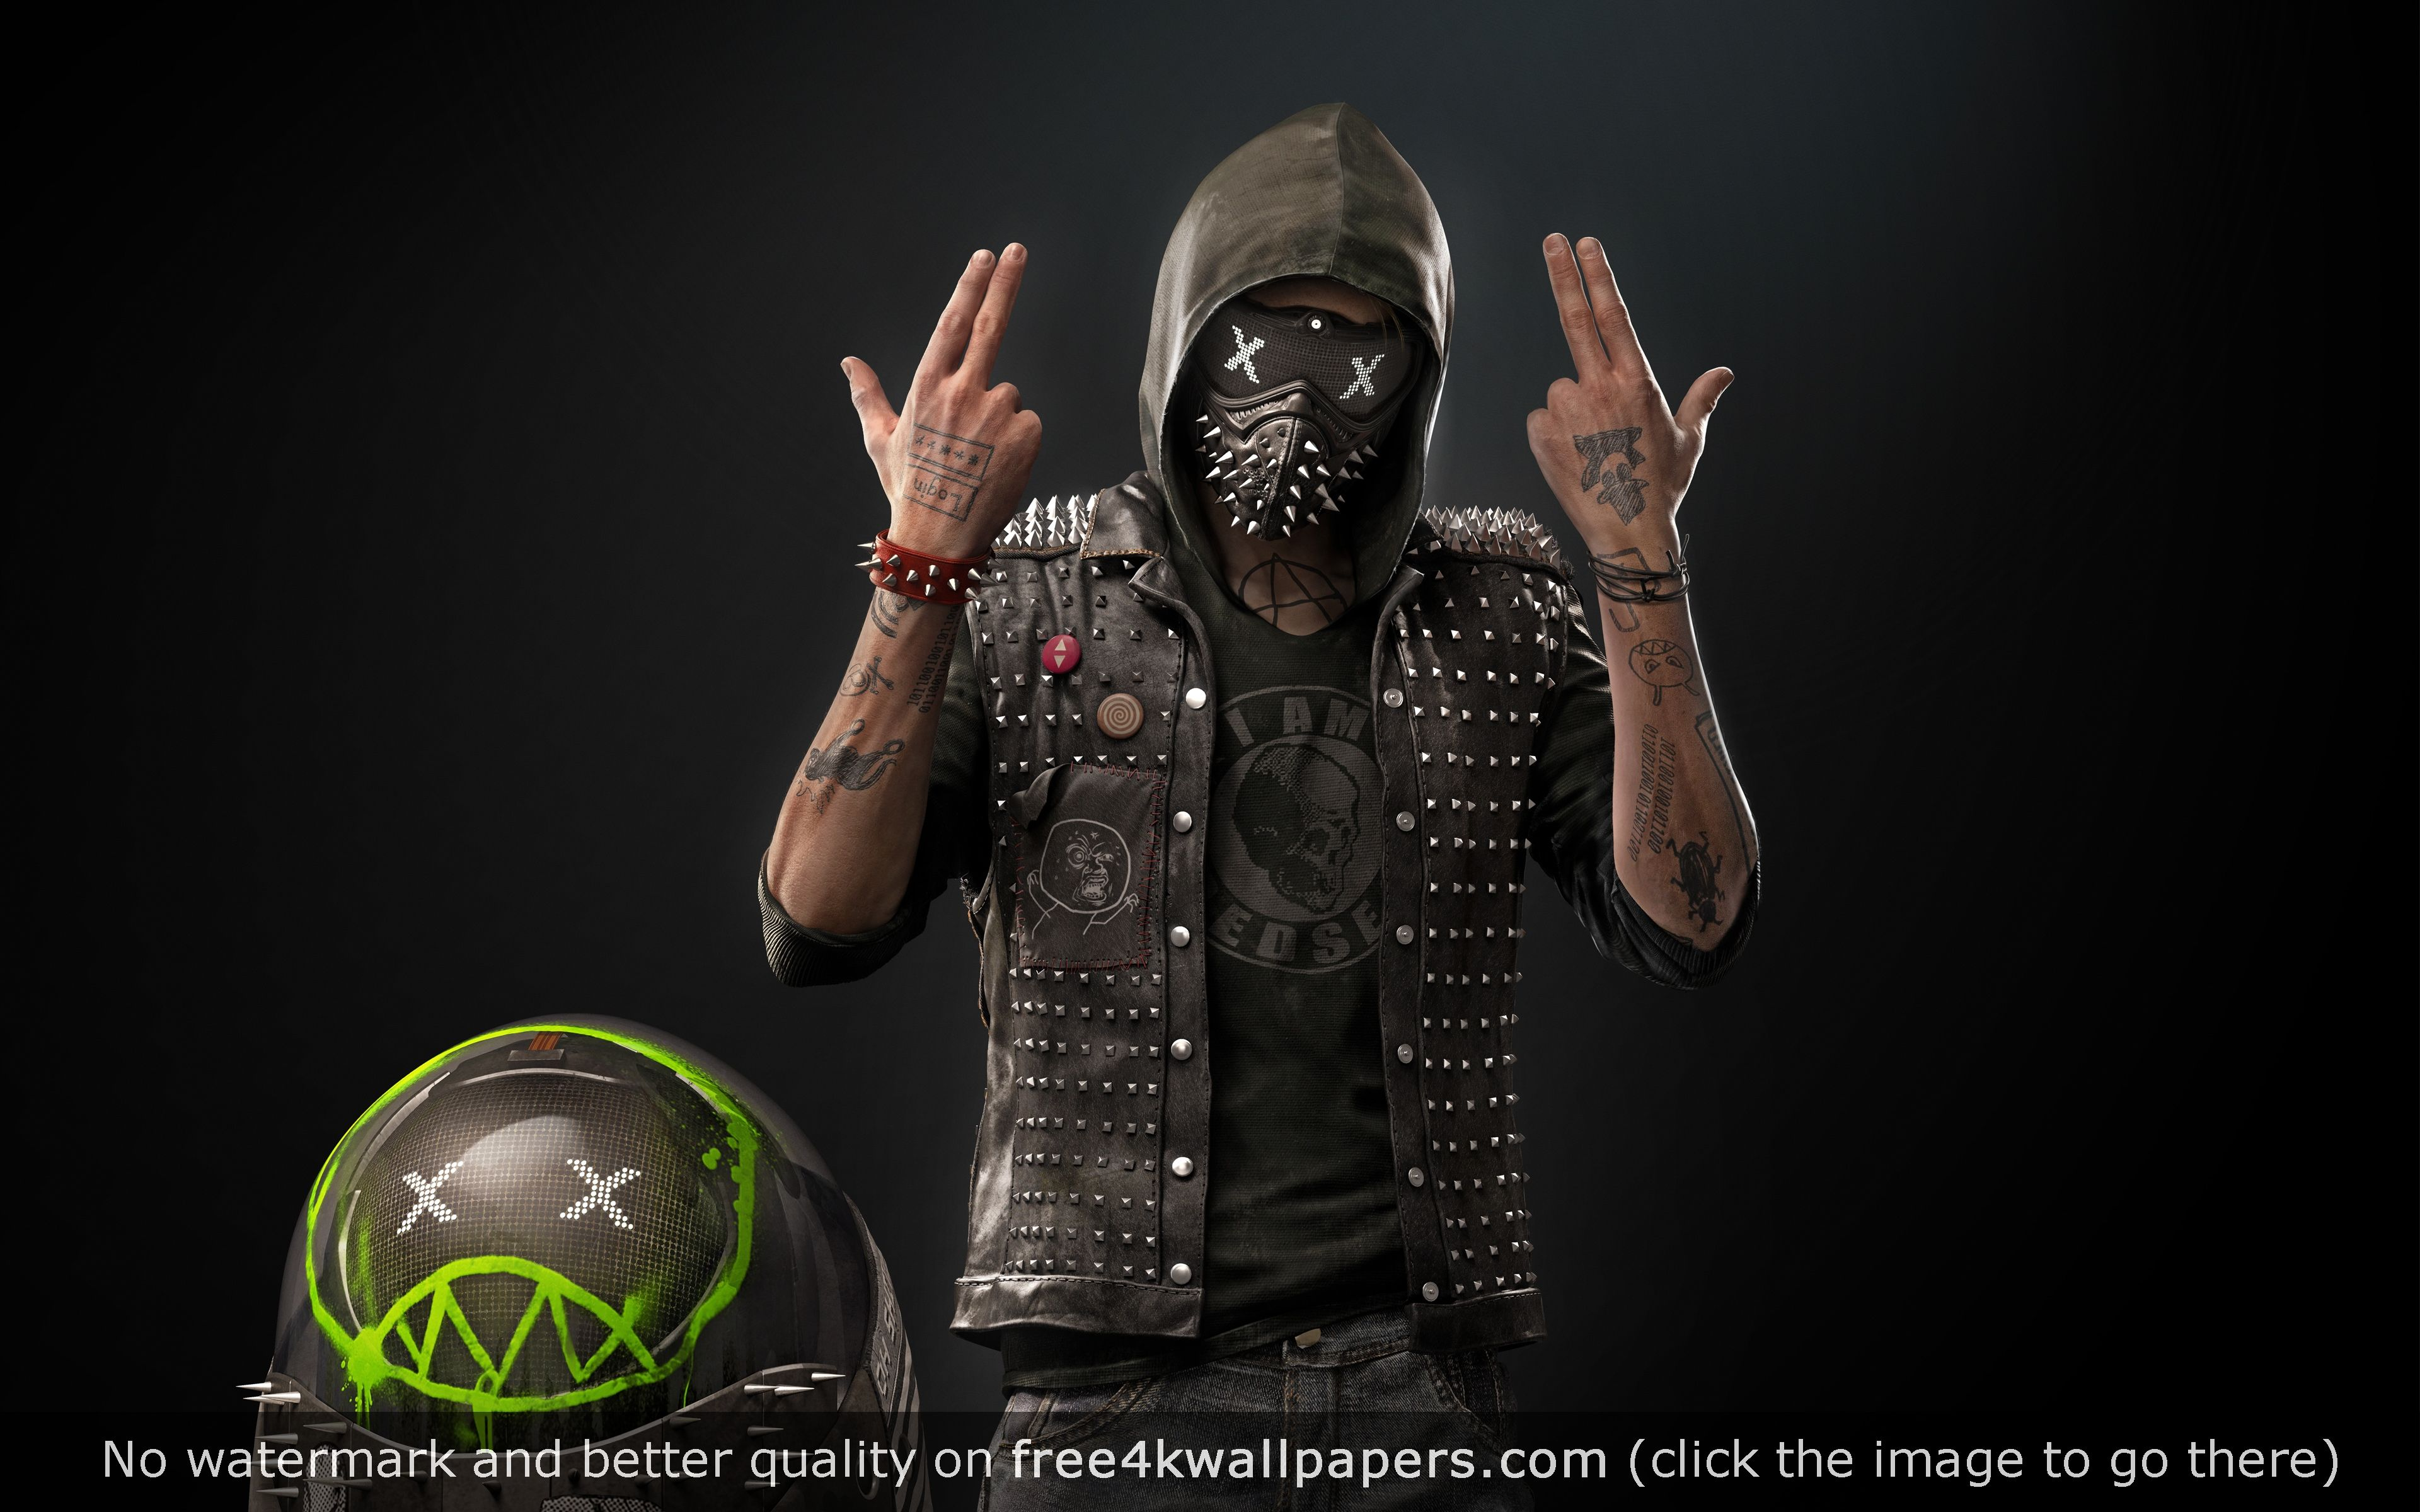 Wrench Junior Robot Watch Dogs 2 4k Wallpaper Watch Dogs Dog Wallpaper Watch Dogs 1